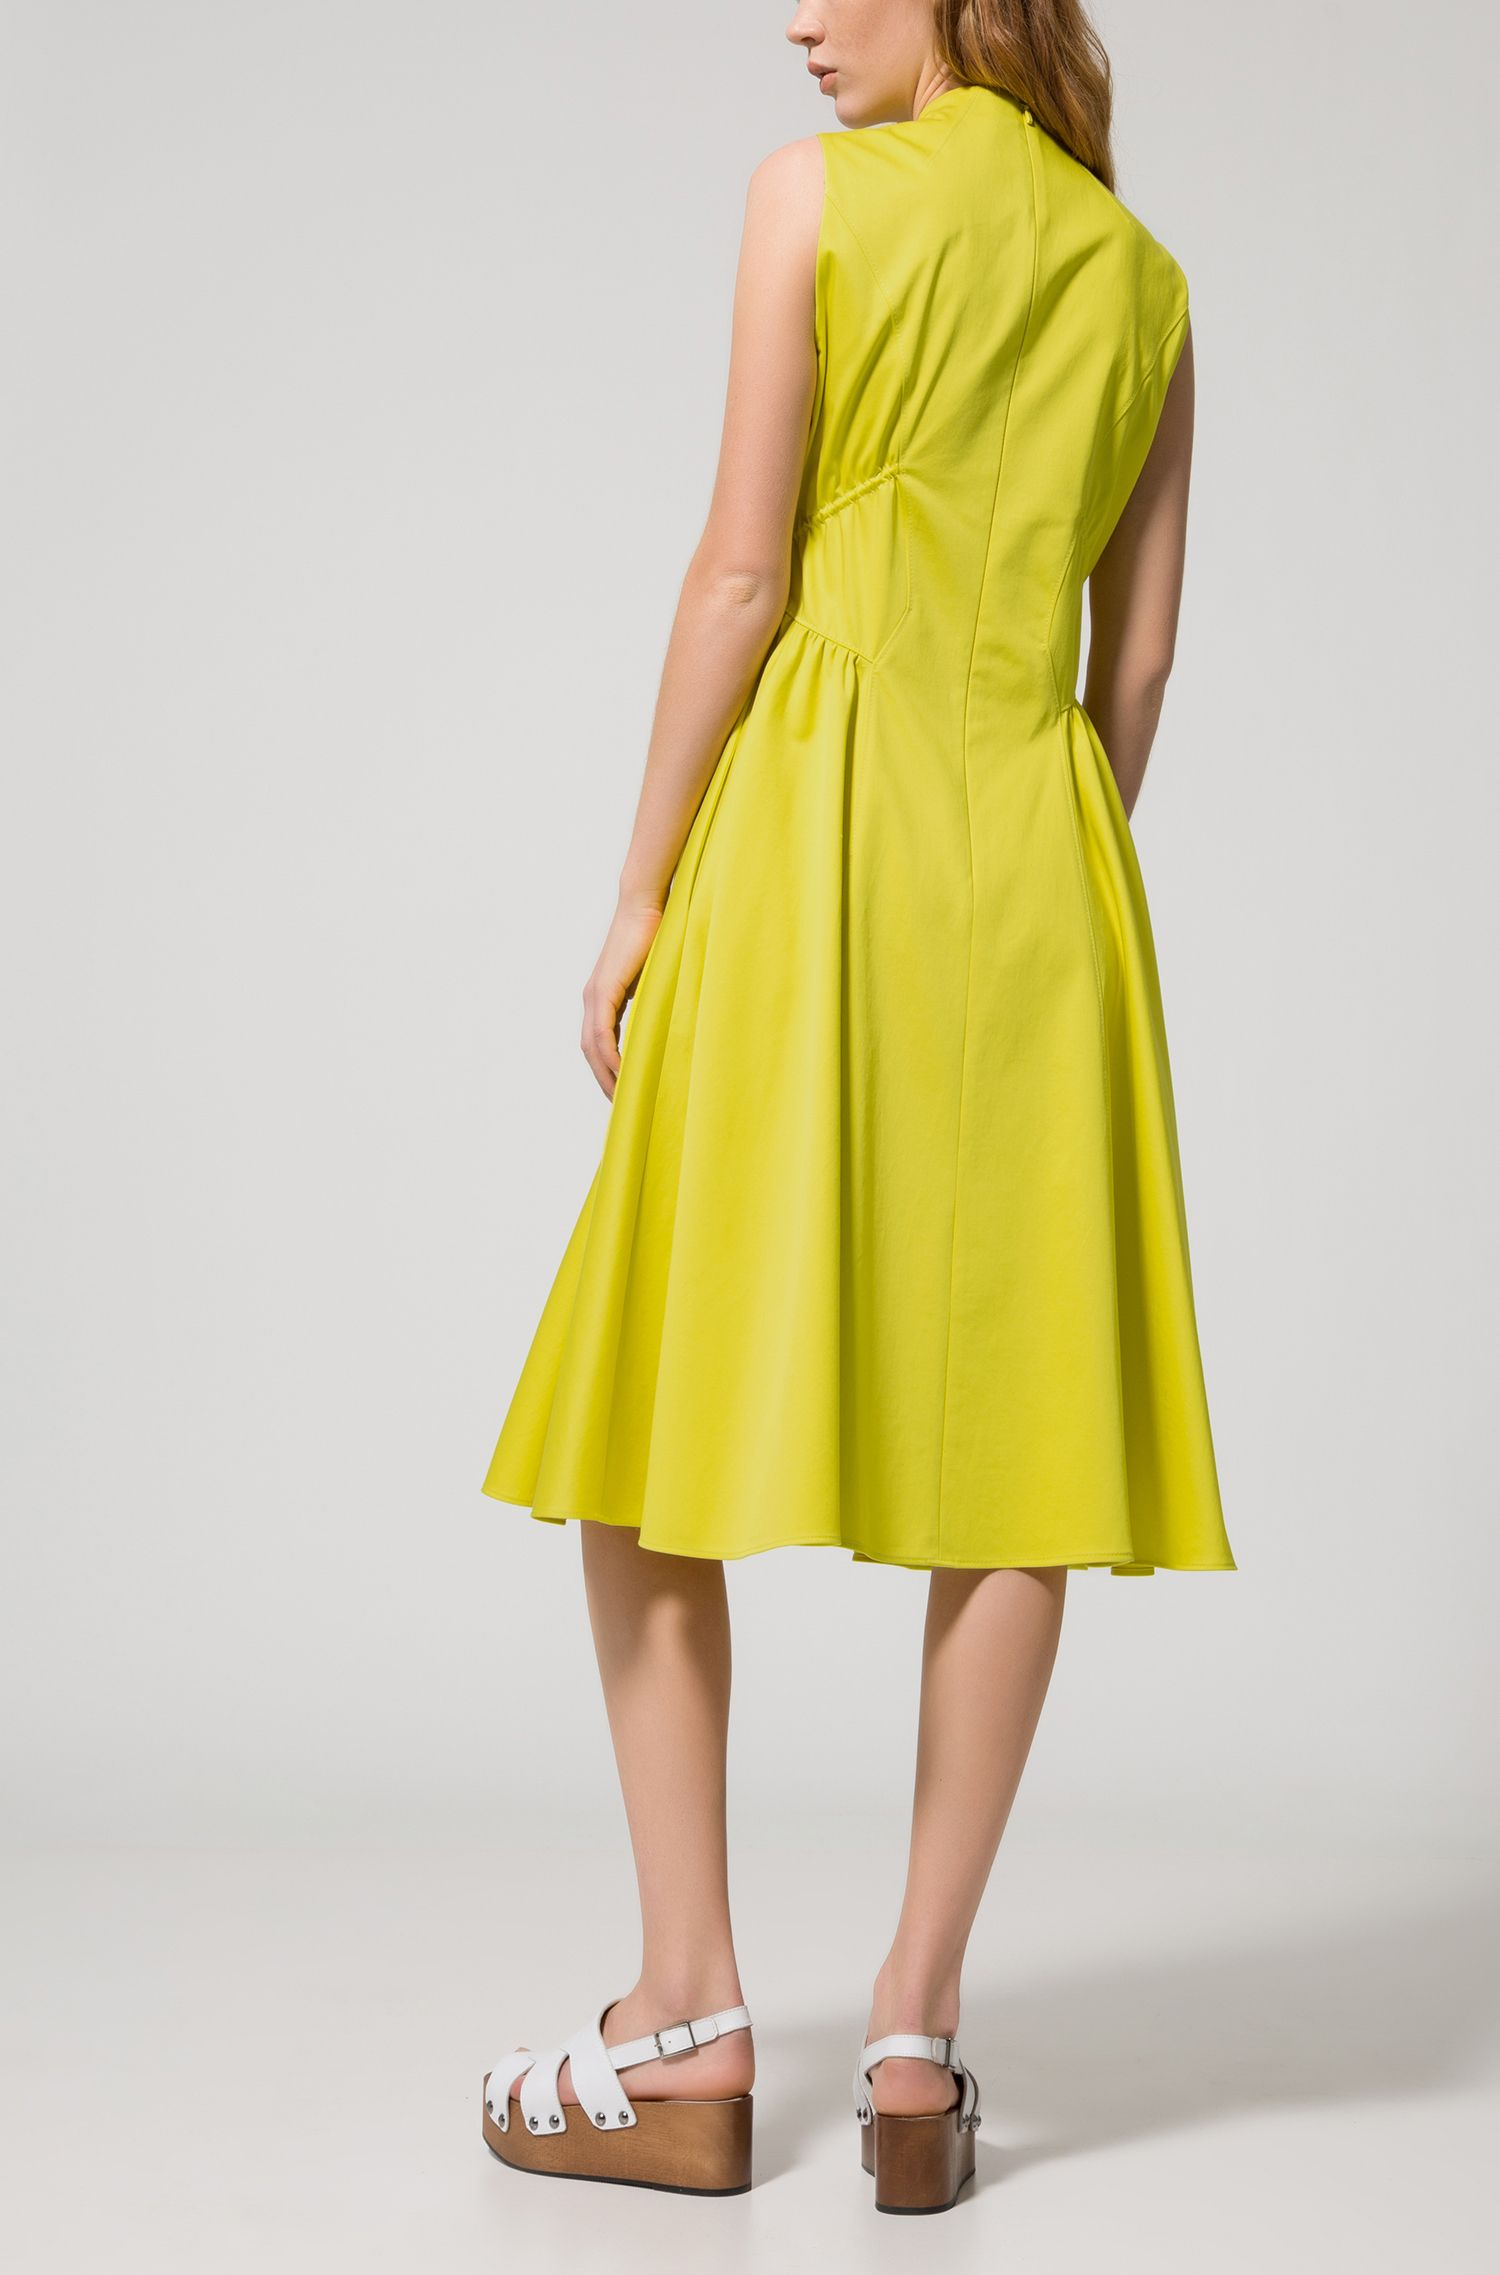 High-neck dress in stretch cotton